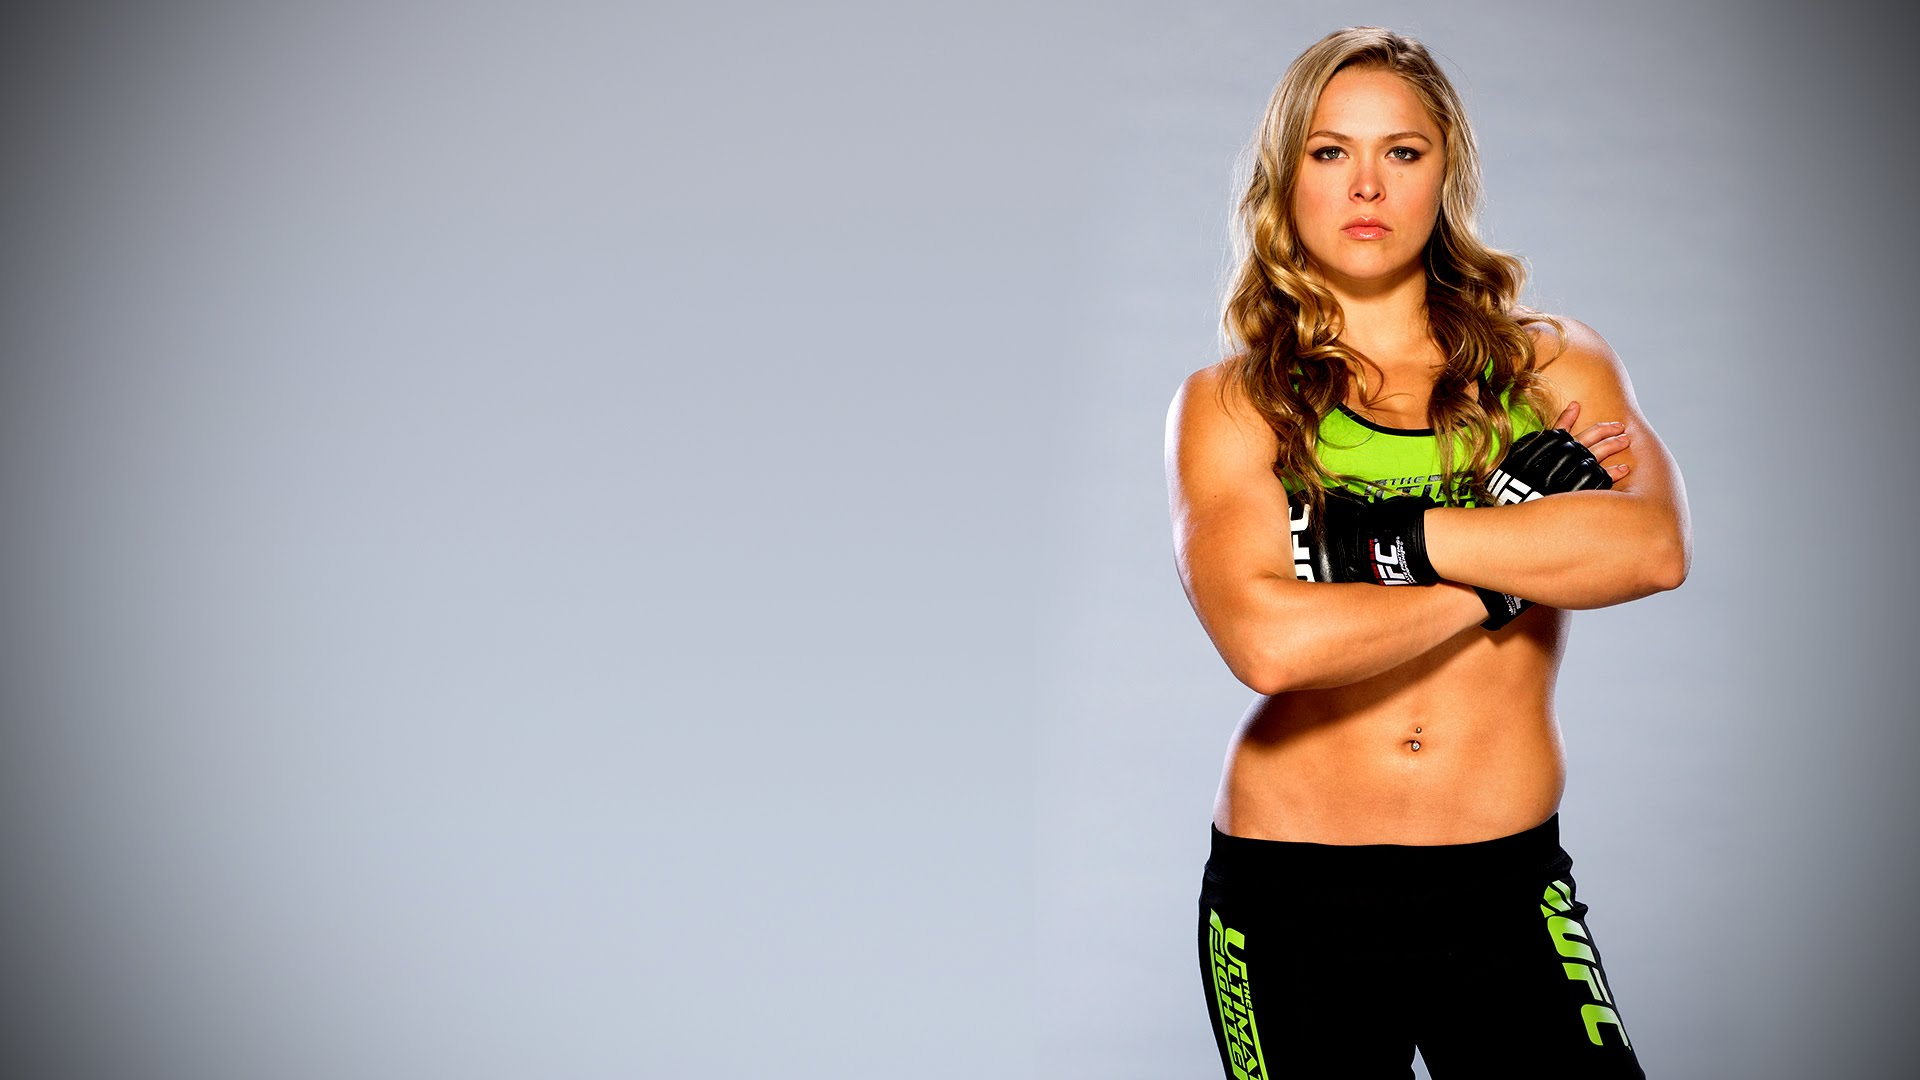 Ronda Rousey on Photoshoot Pics